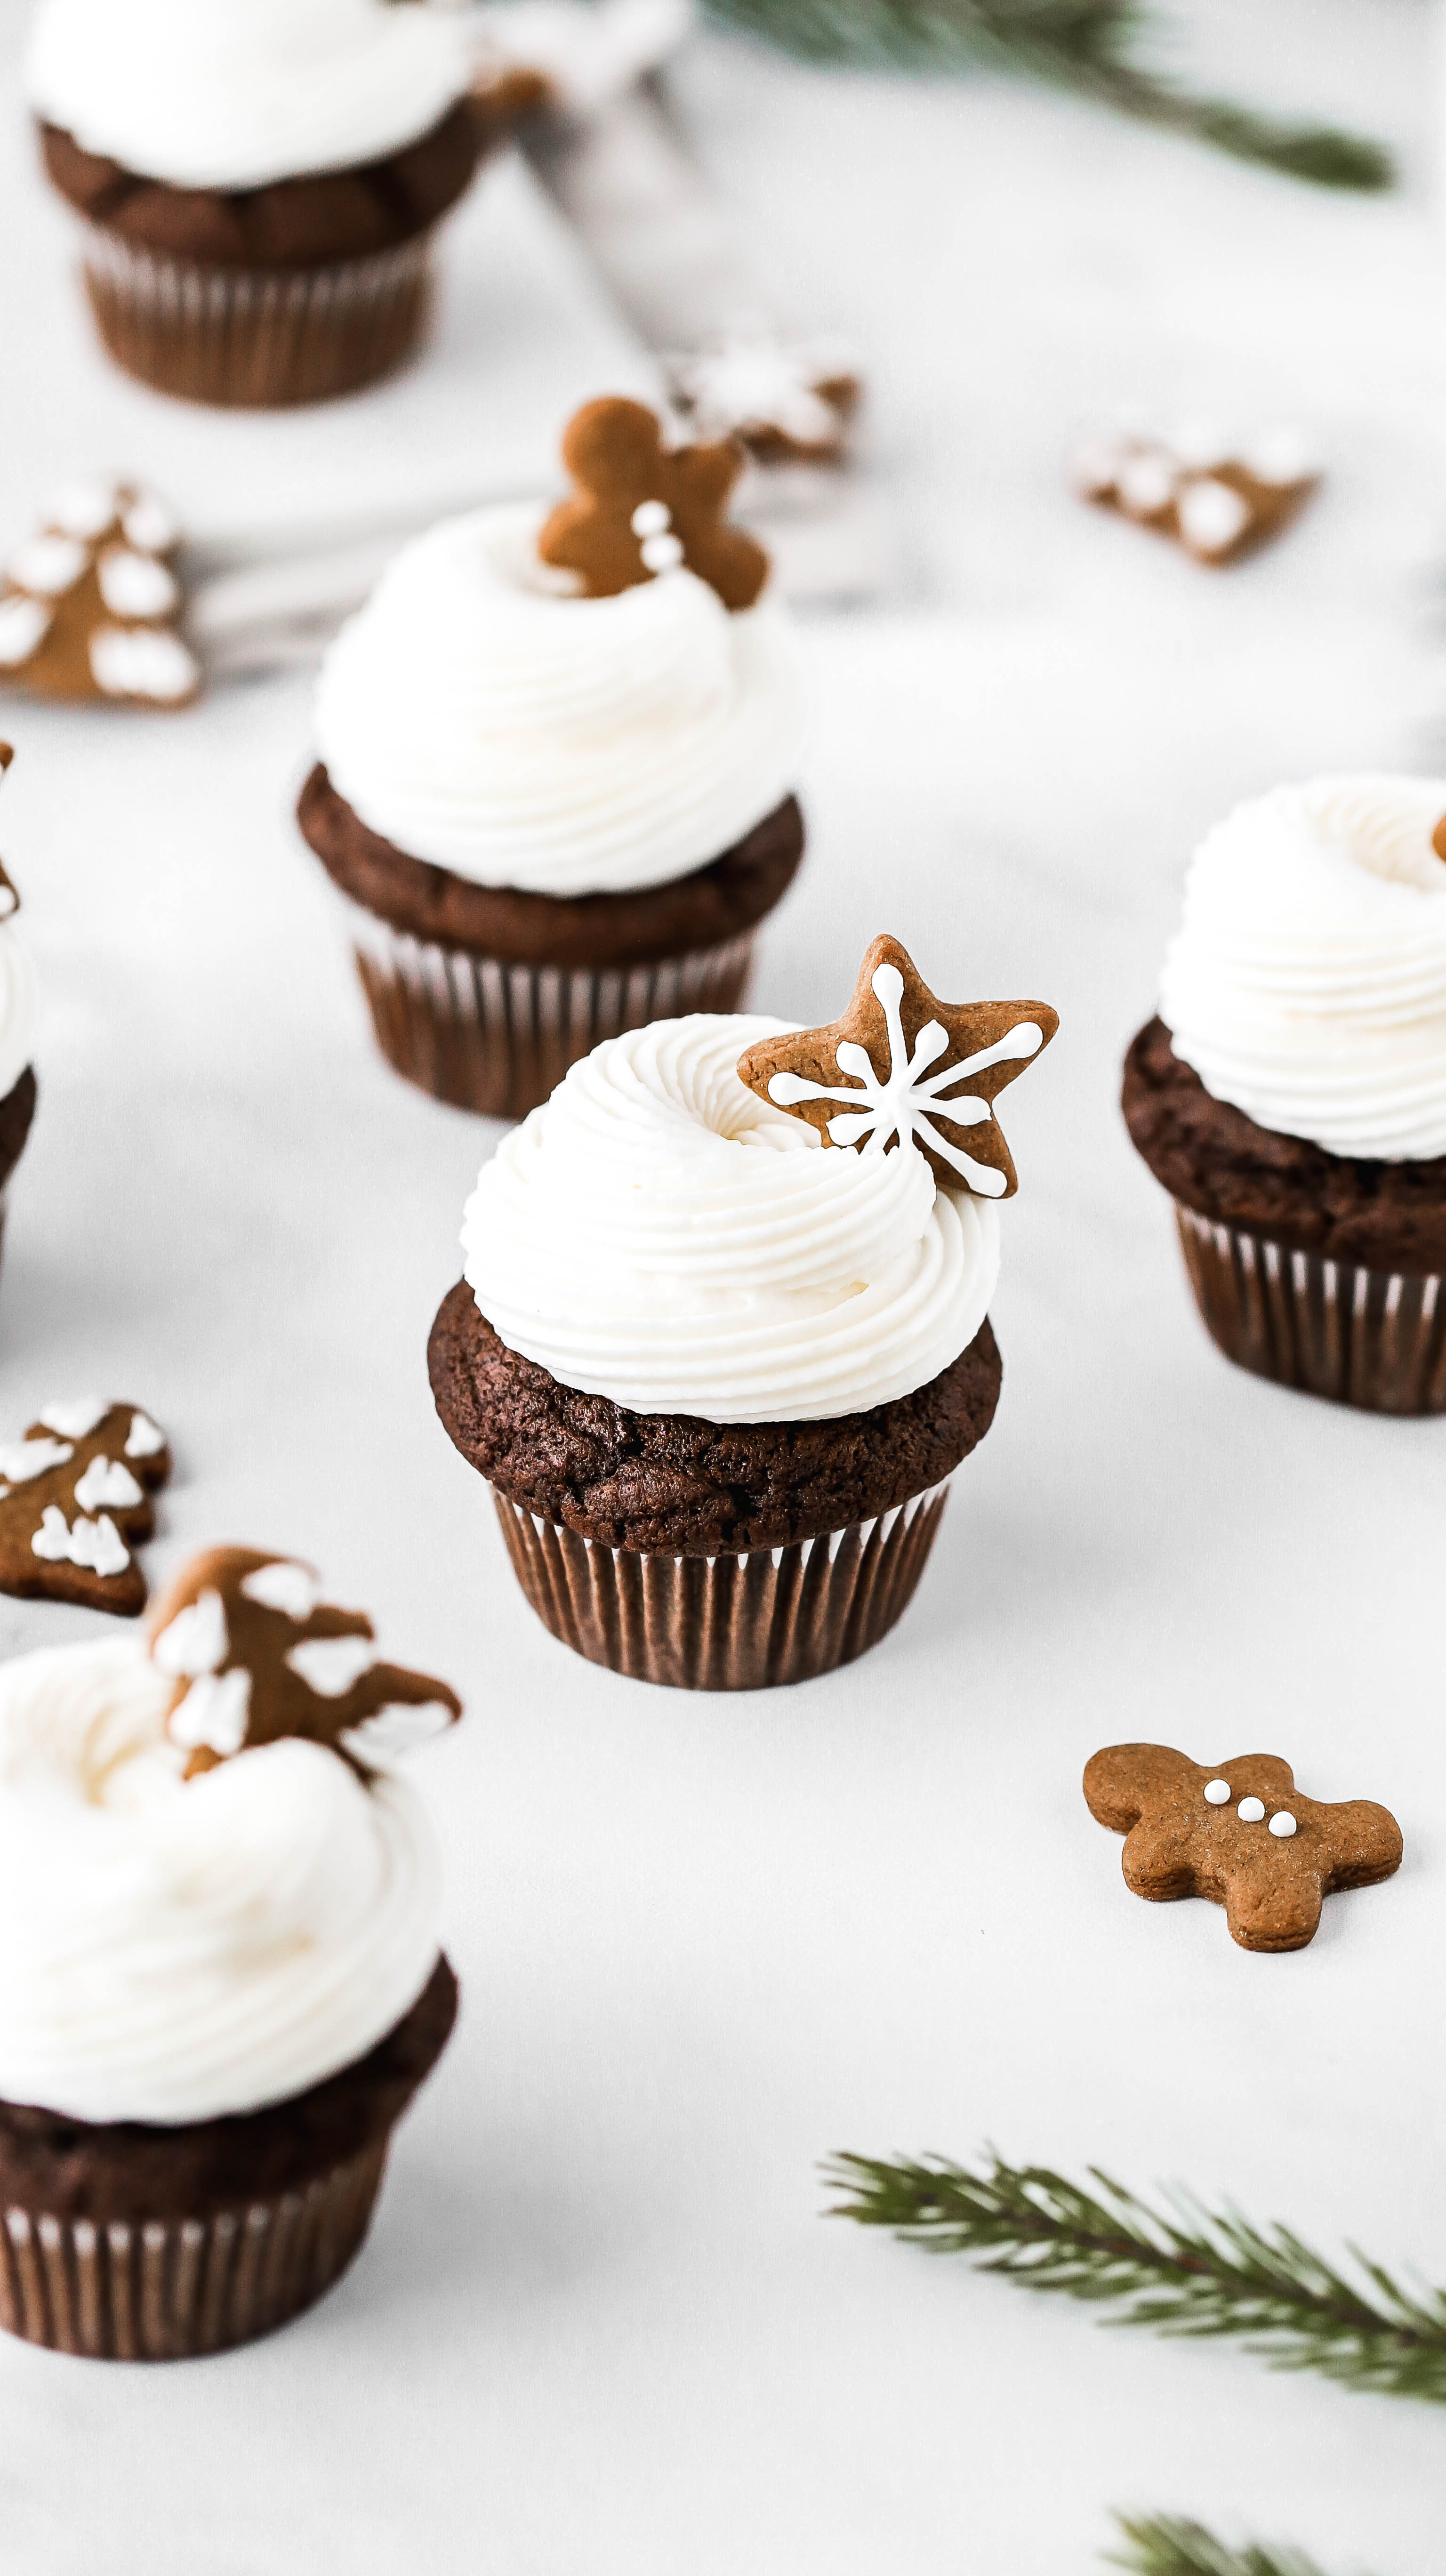 gingerbread cupcakes scattered on a marble countertop